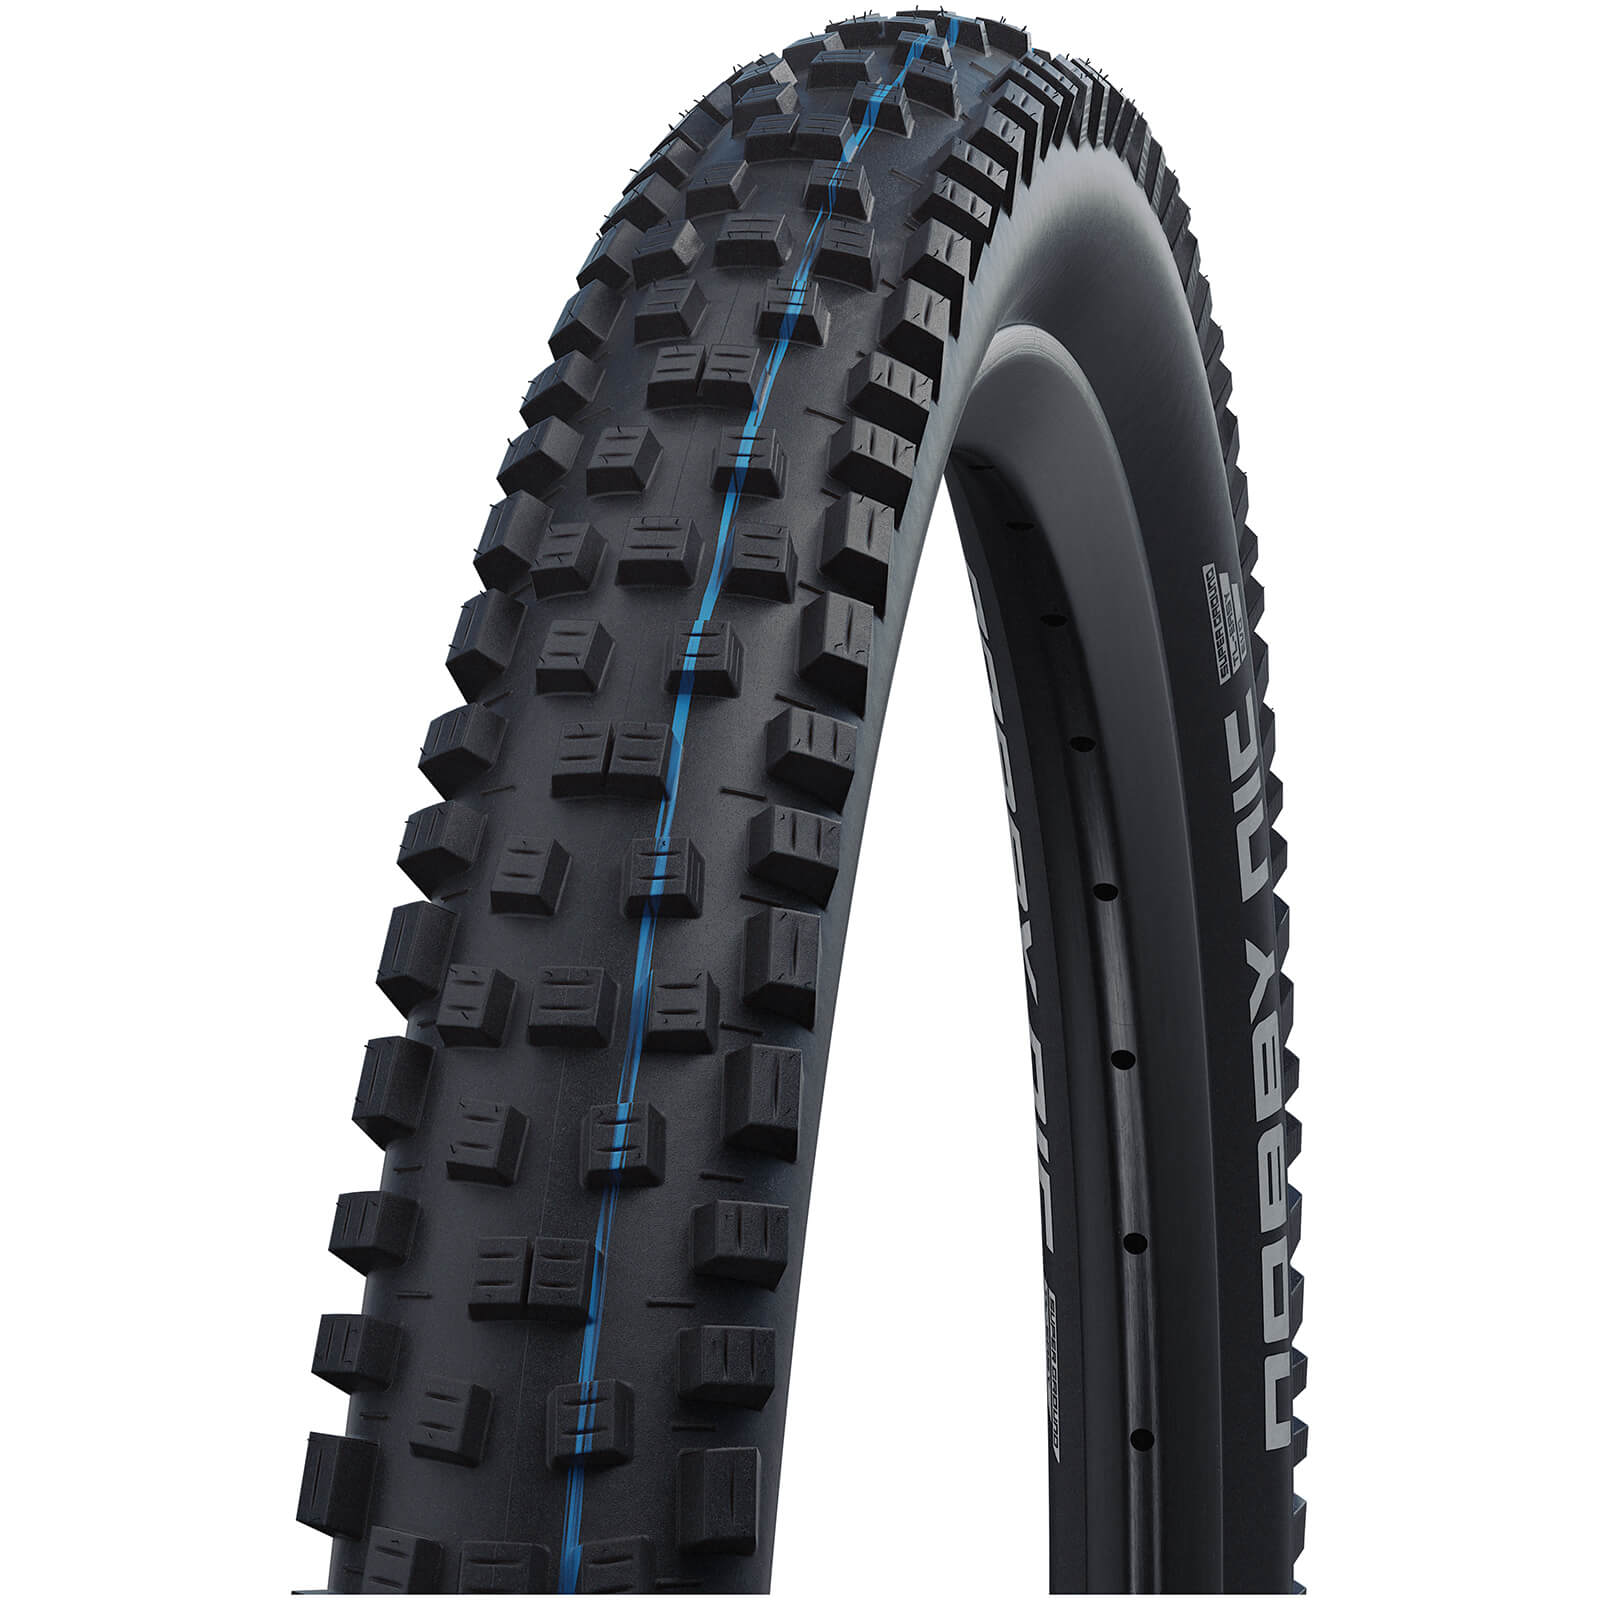 Schwalbe Nobby Nic Evo Super Ground Tubeless MTB Tyre - 29in x 2.35in - Black